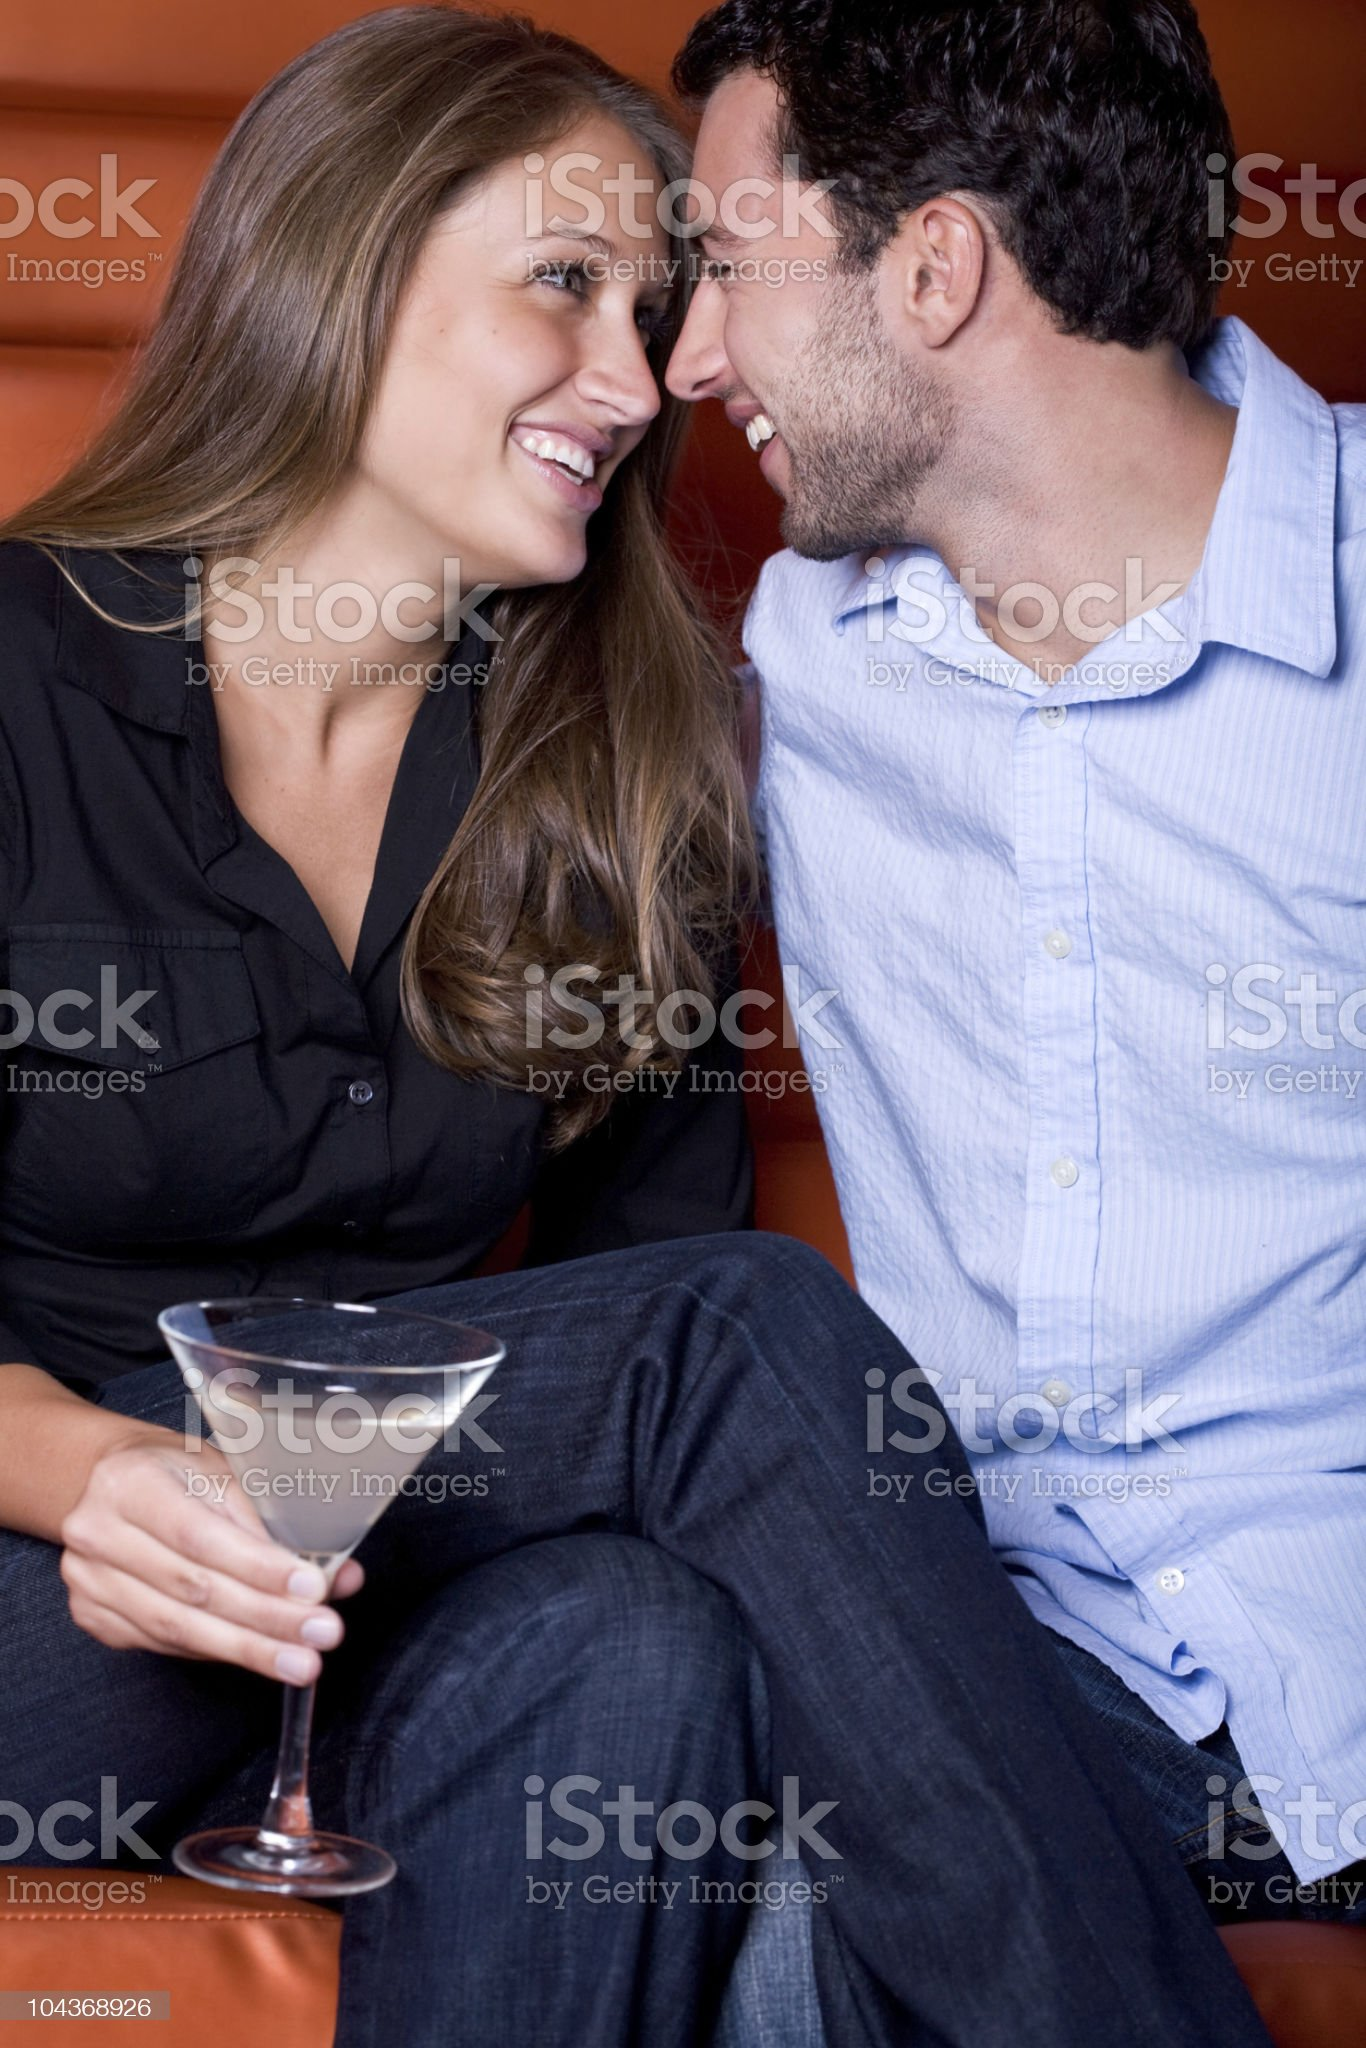 Flirting royalty-free stock photo